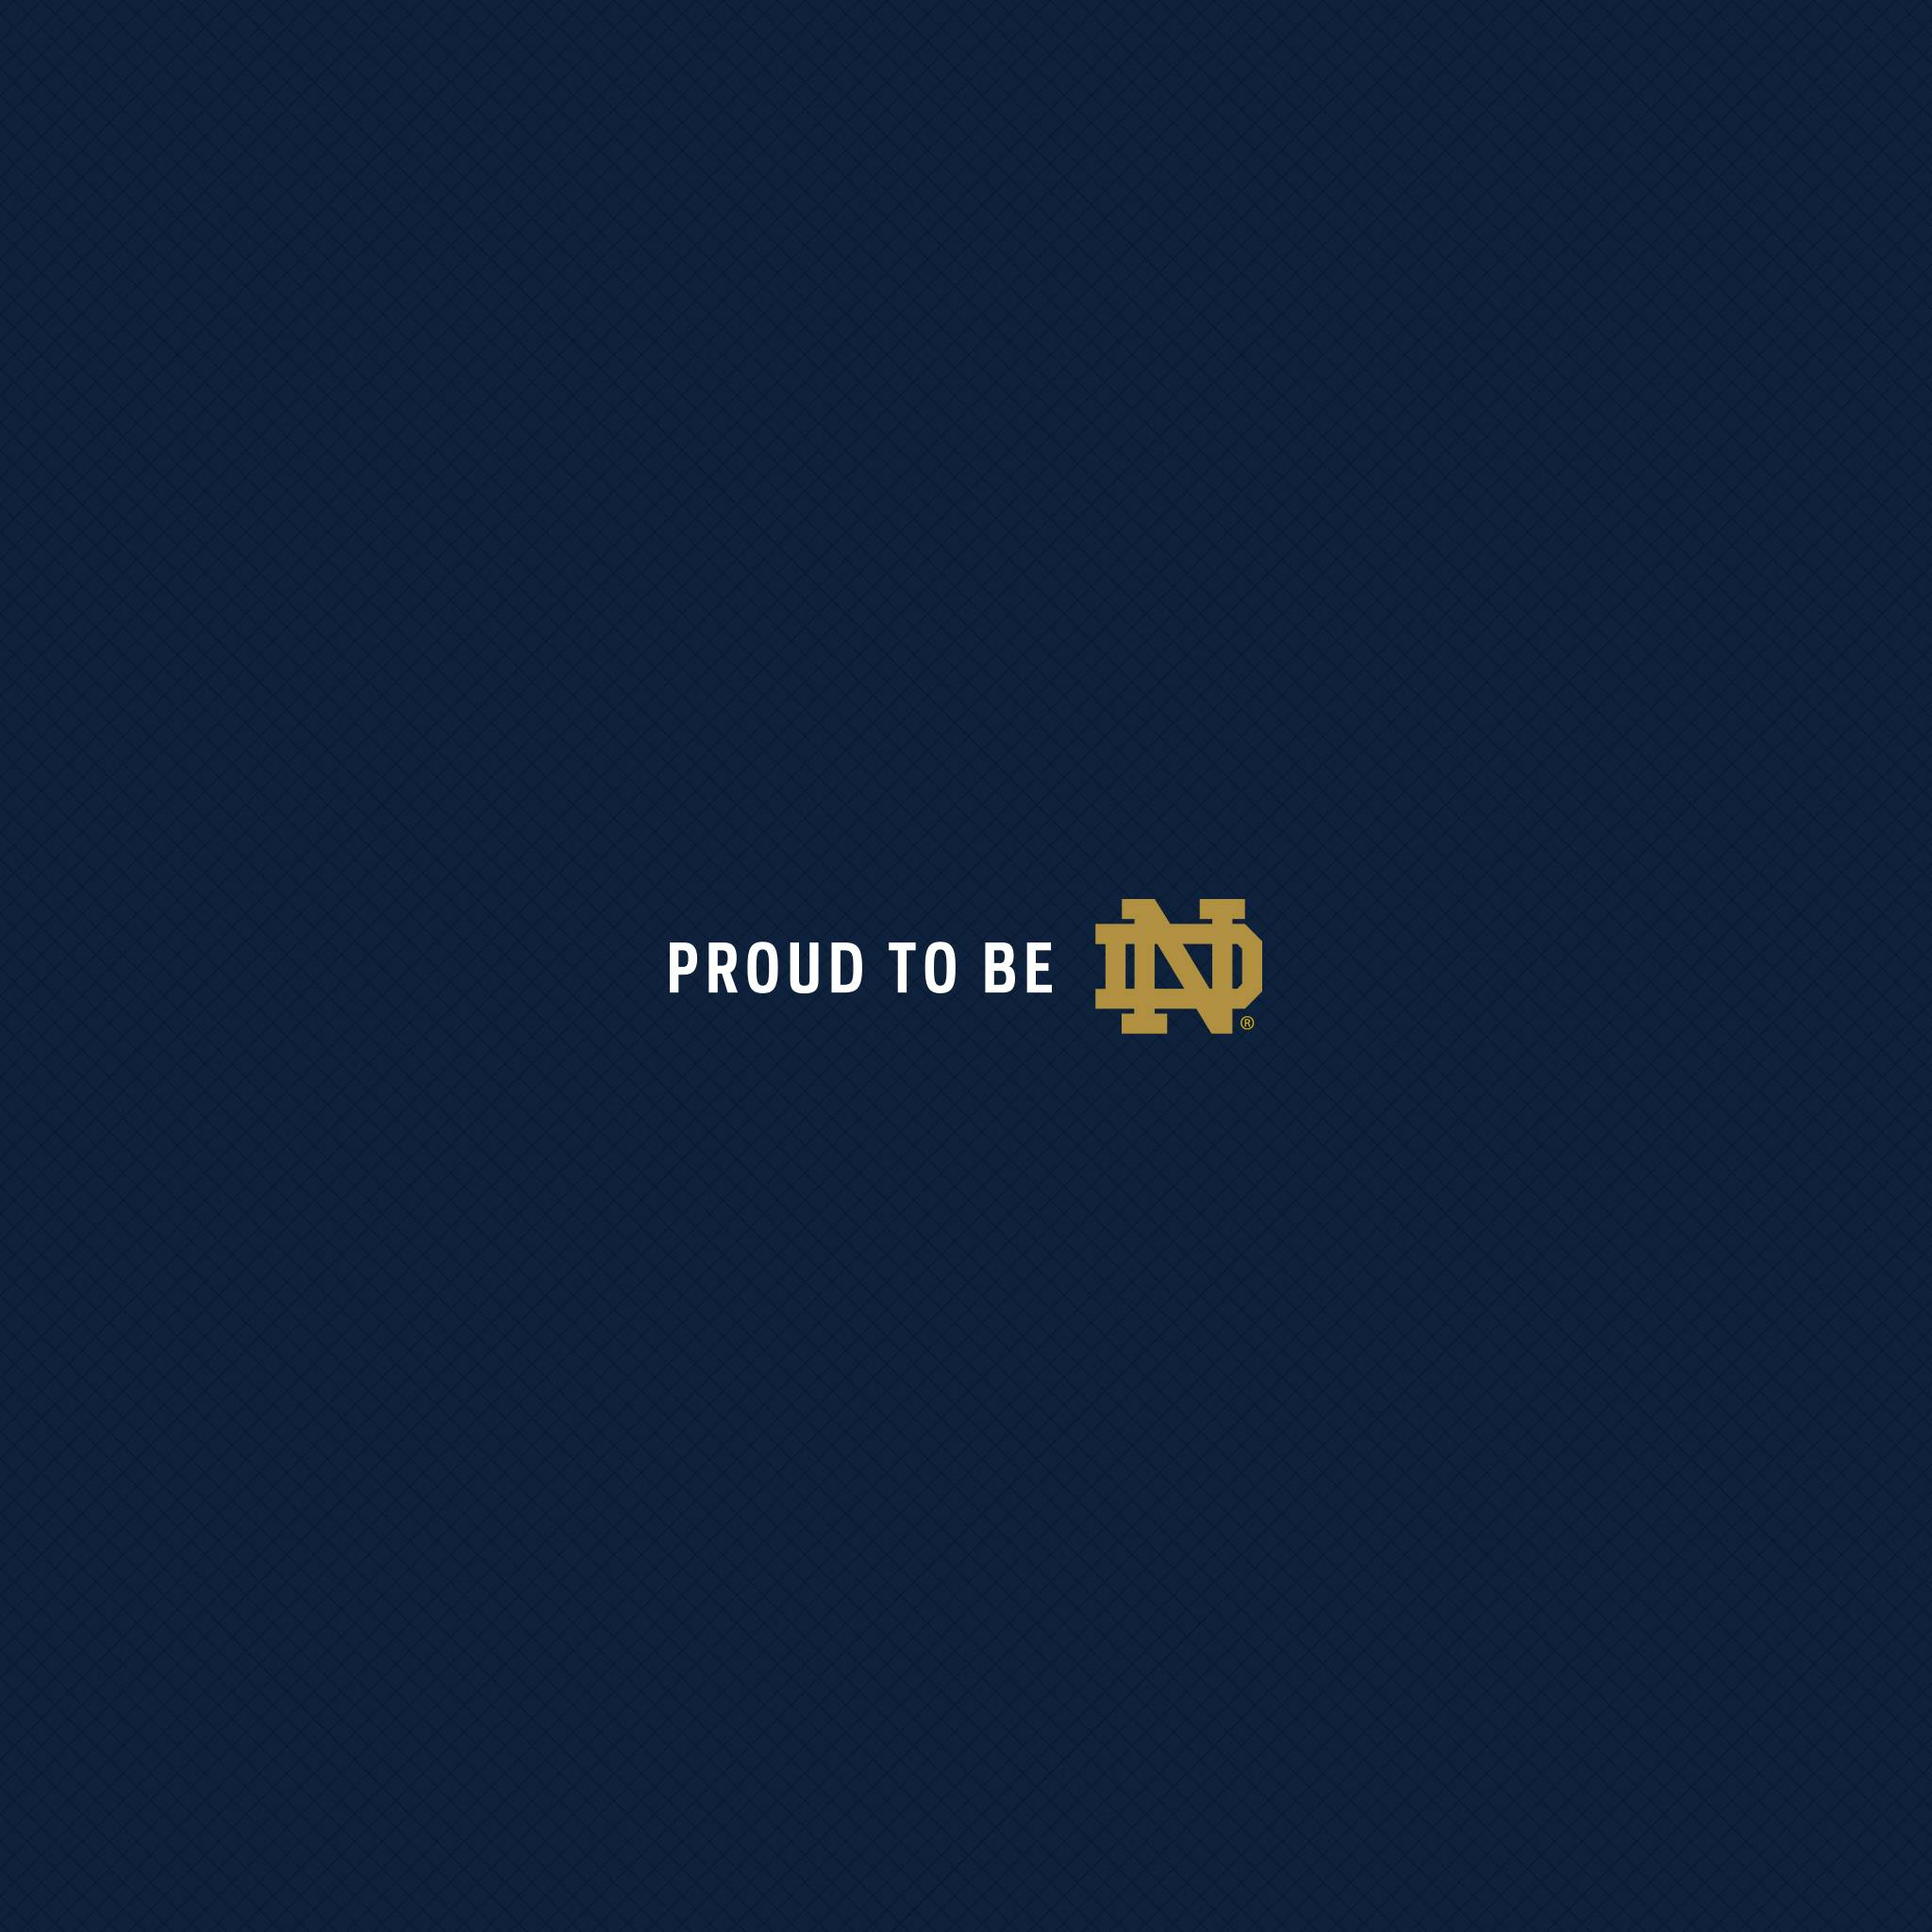 Notre Dame Wallpapers Wallpaper Cave